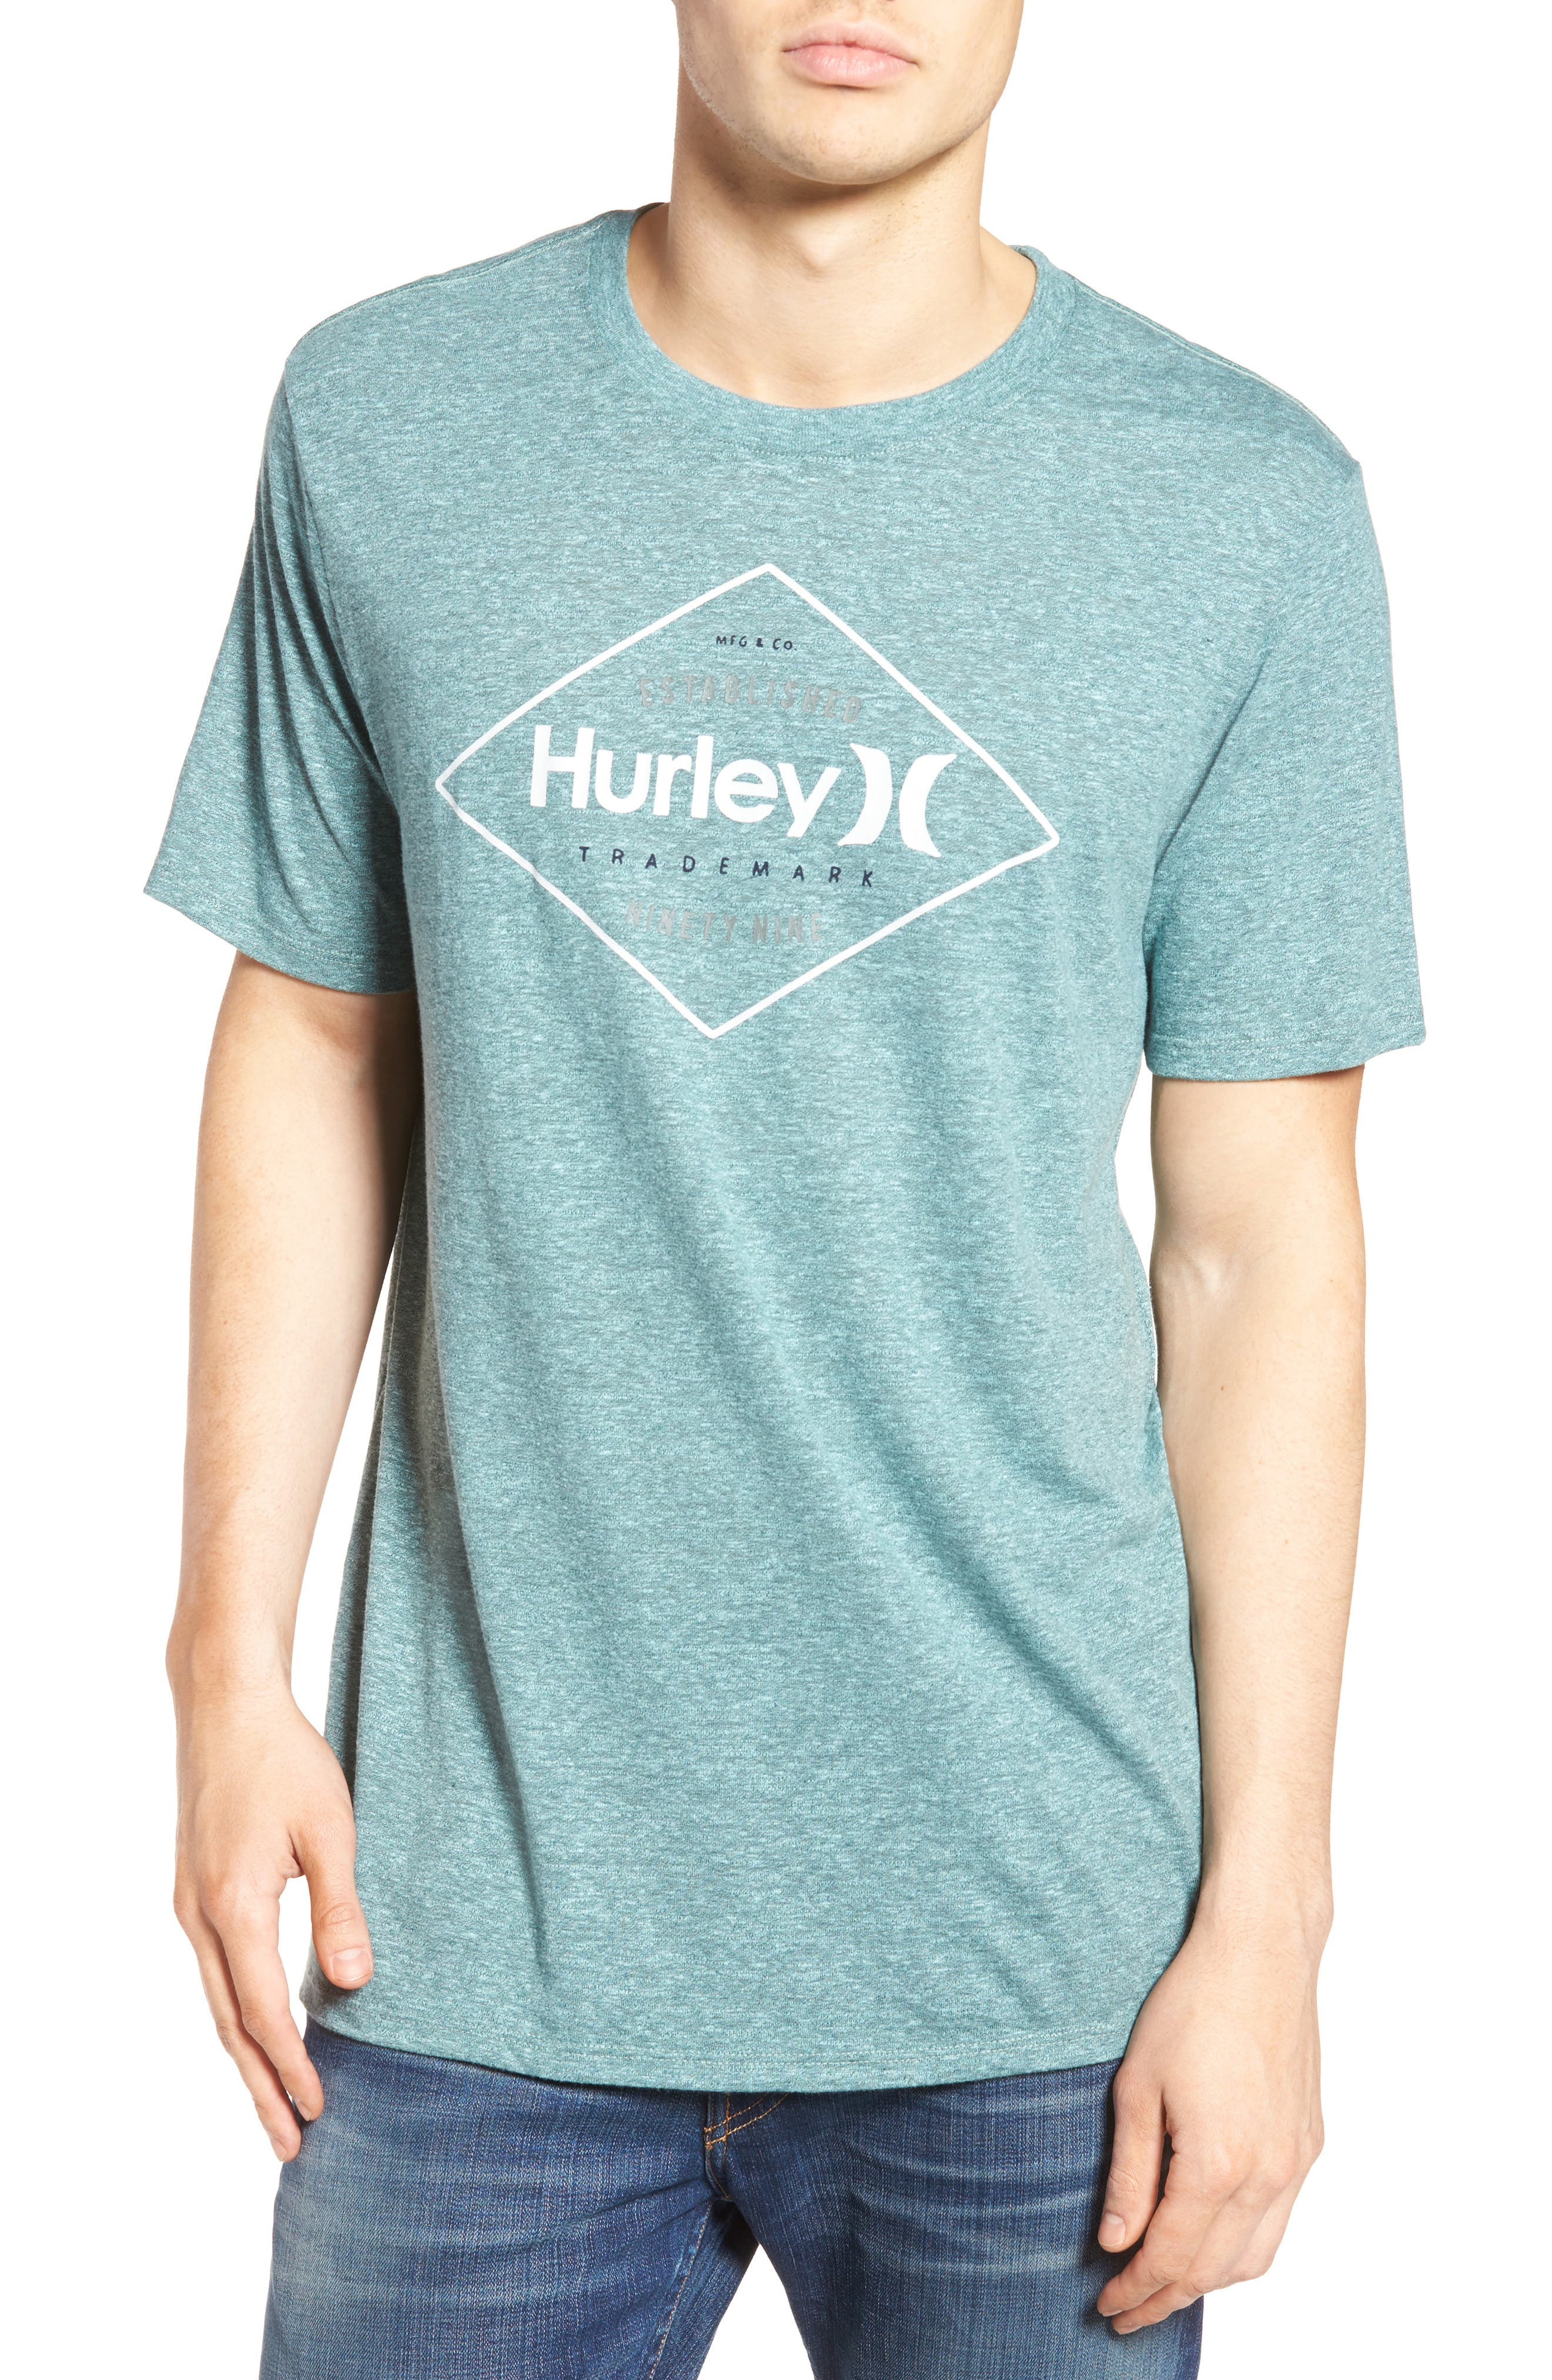 Hurley Diamond Logo Graphic T-Shirt